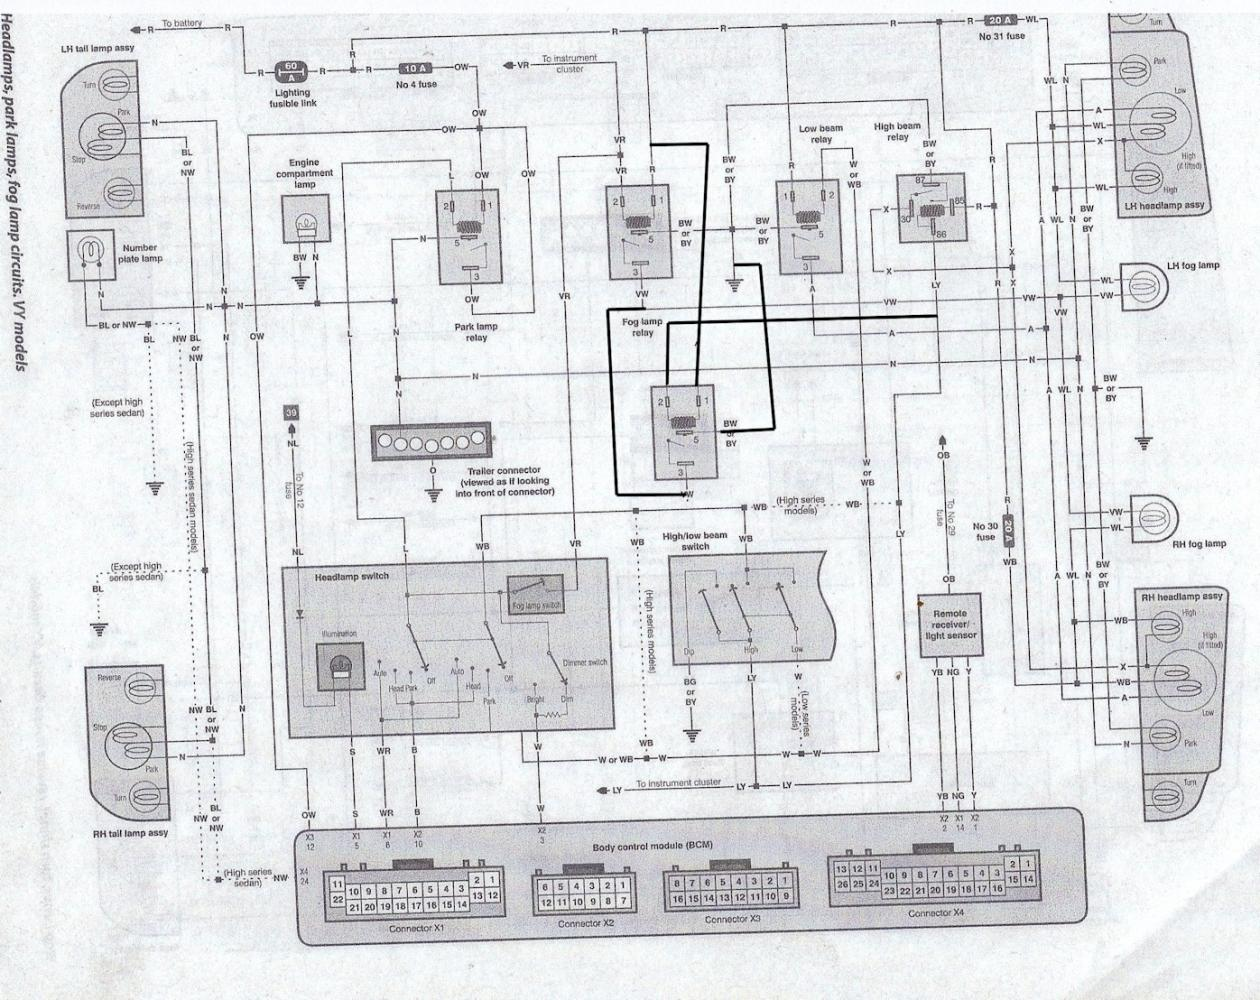 spot lights wiring diagram html